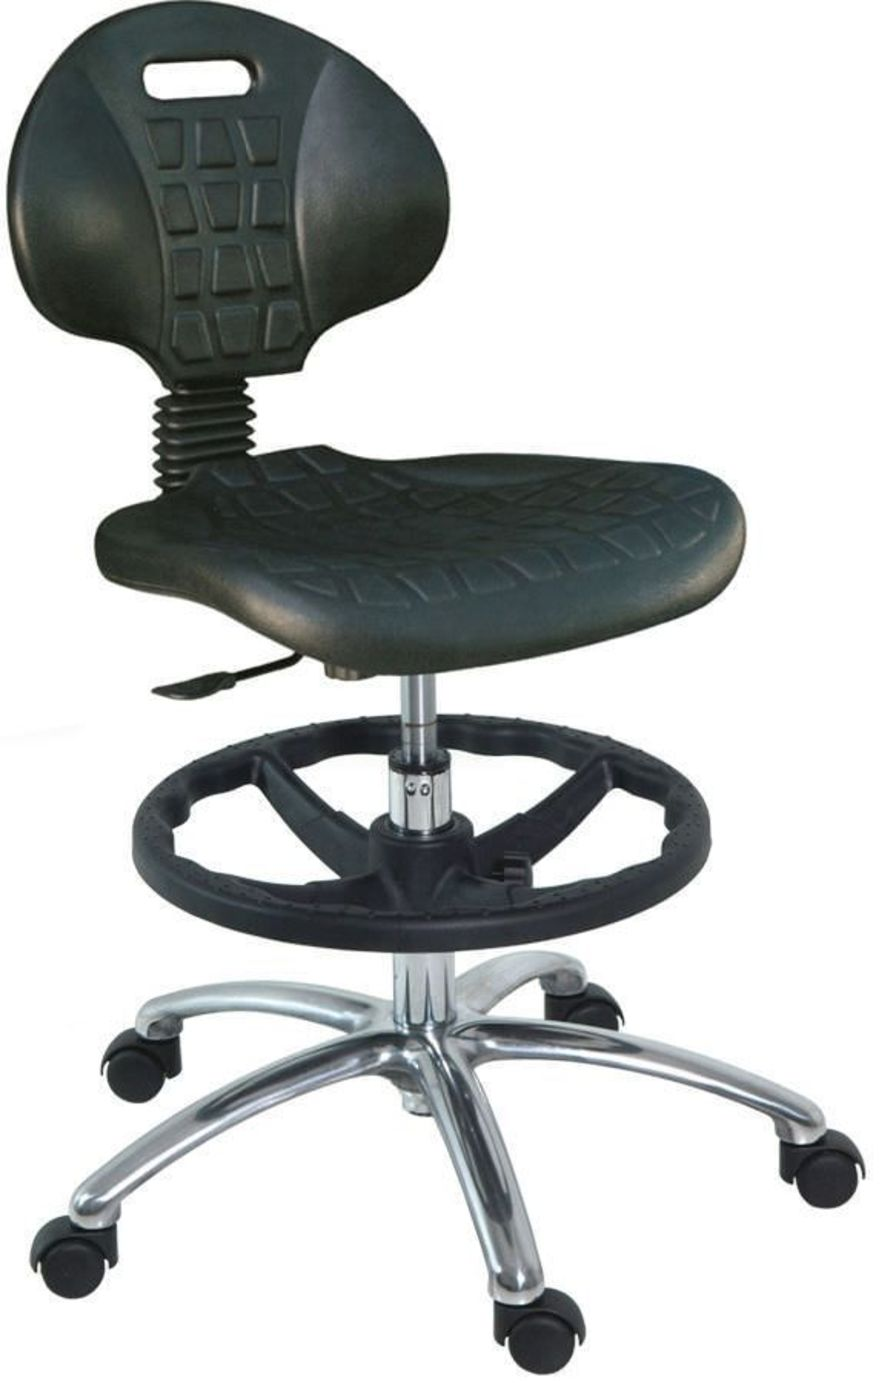 Medical stool / on casters / height-adjustable / with backrest H-196 Hidemar